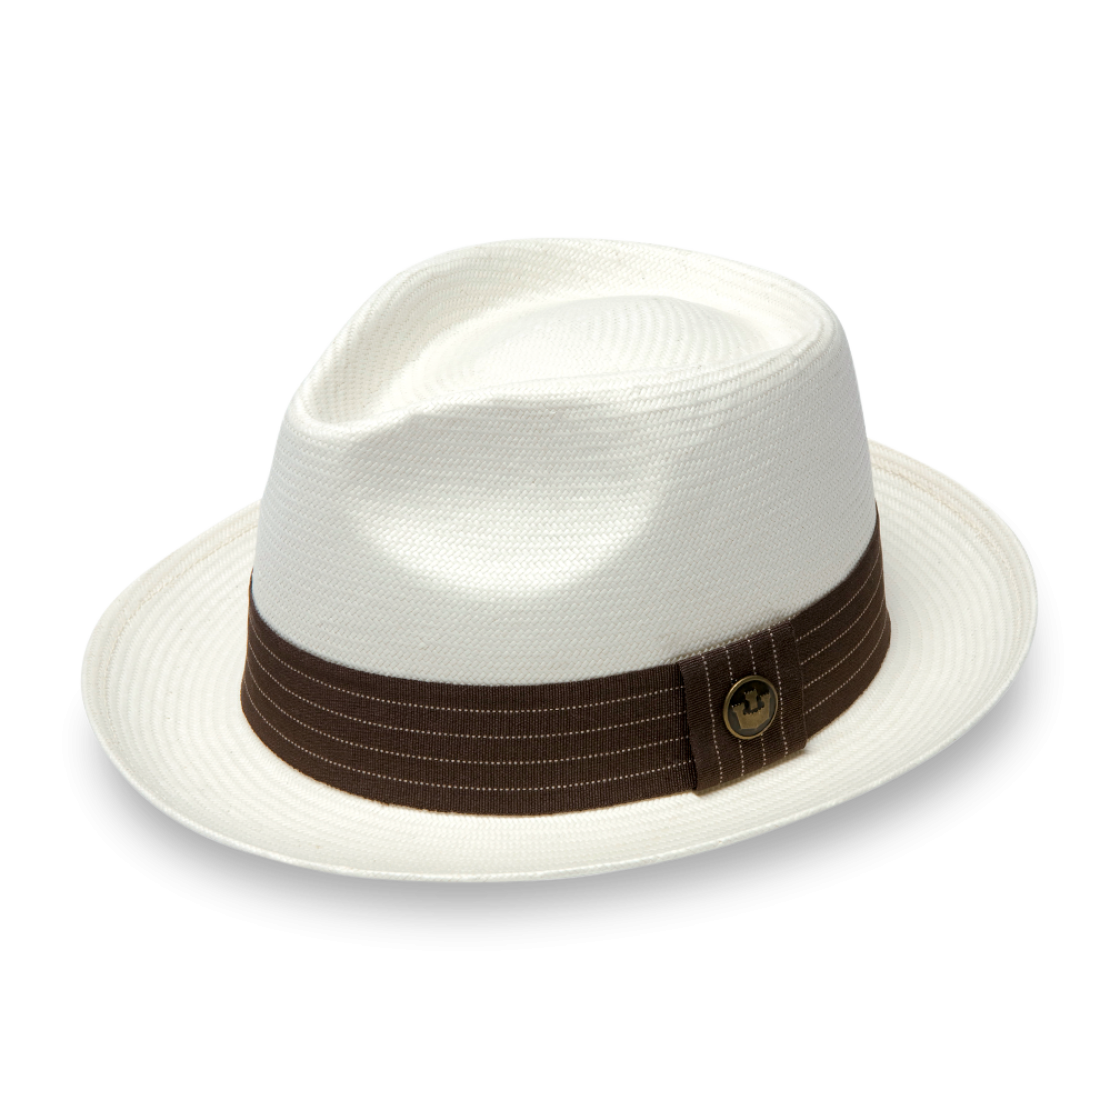 d768c4f3483b4 Snare Stone Straw Classic Brim Fedora hat front view